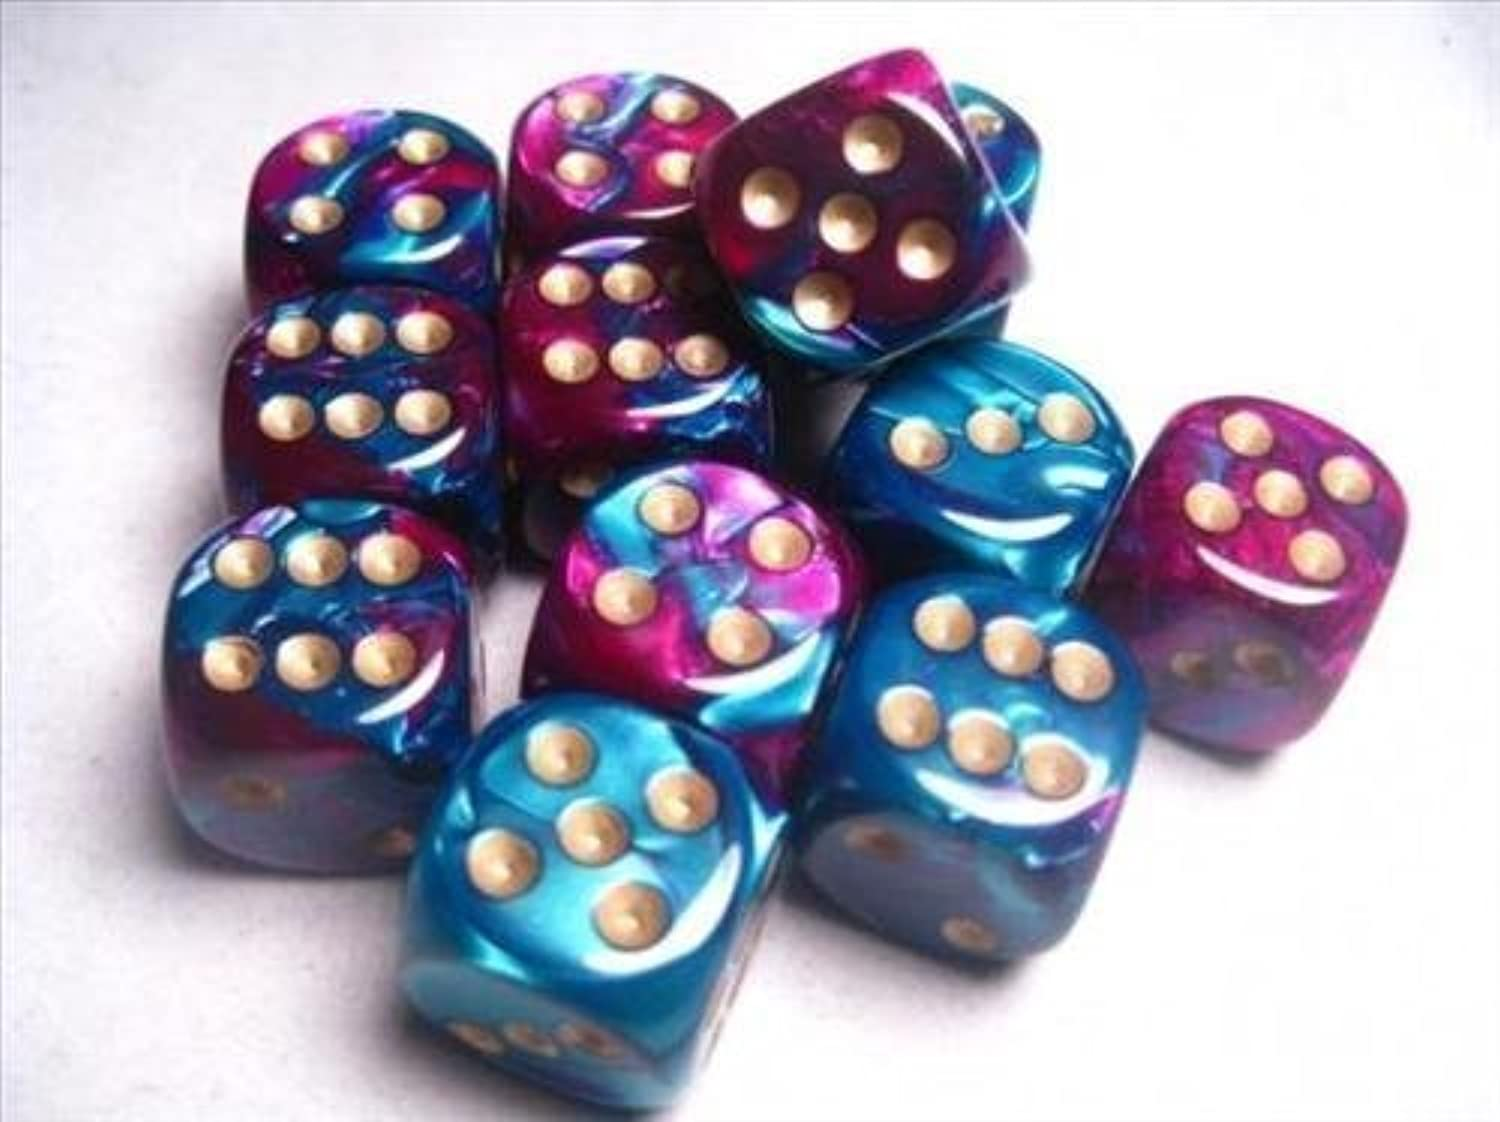 Chessex Dice d6 Sets  Gemini Purple & Teal with gold - 16mm Six Sided Die (12) Block of Dice (2-Pack)